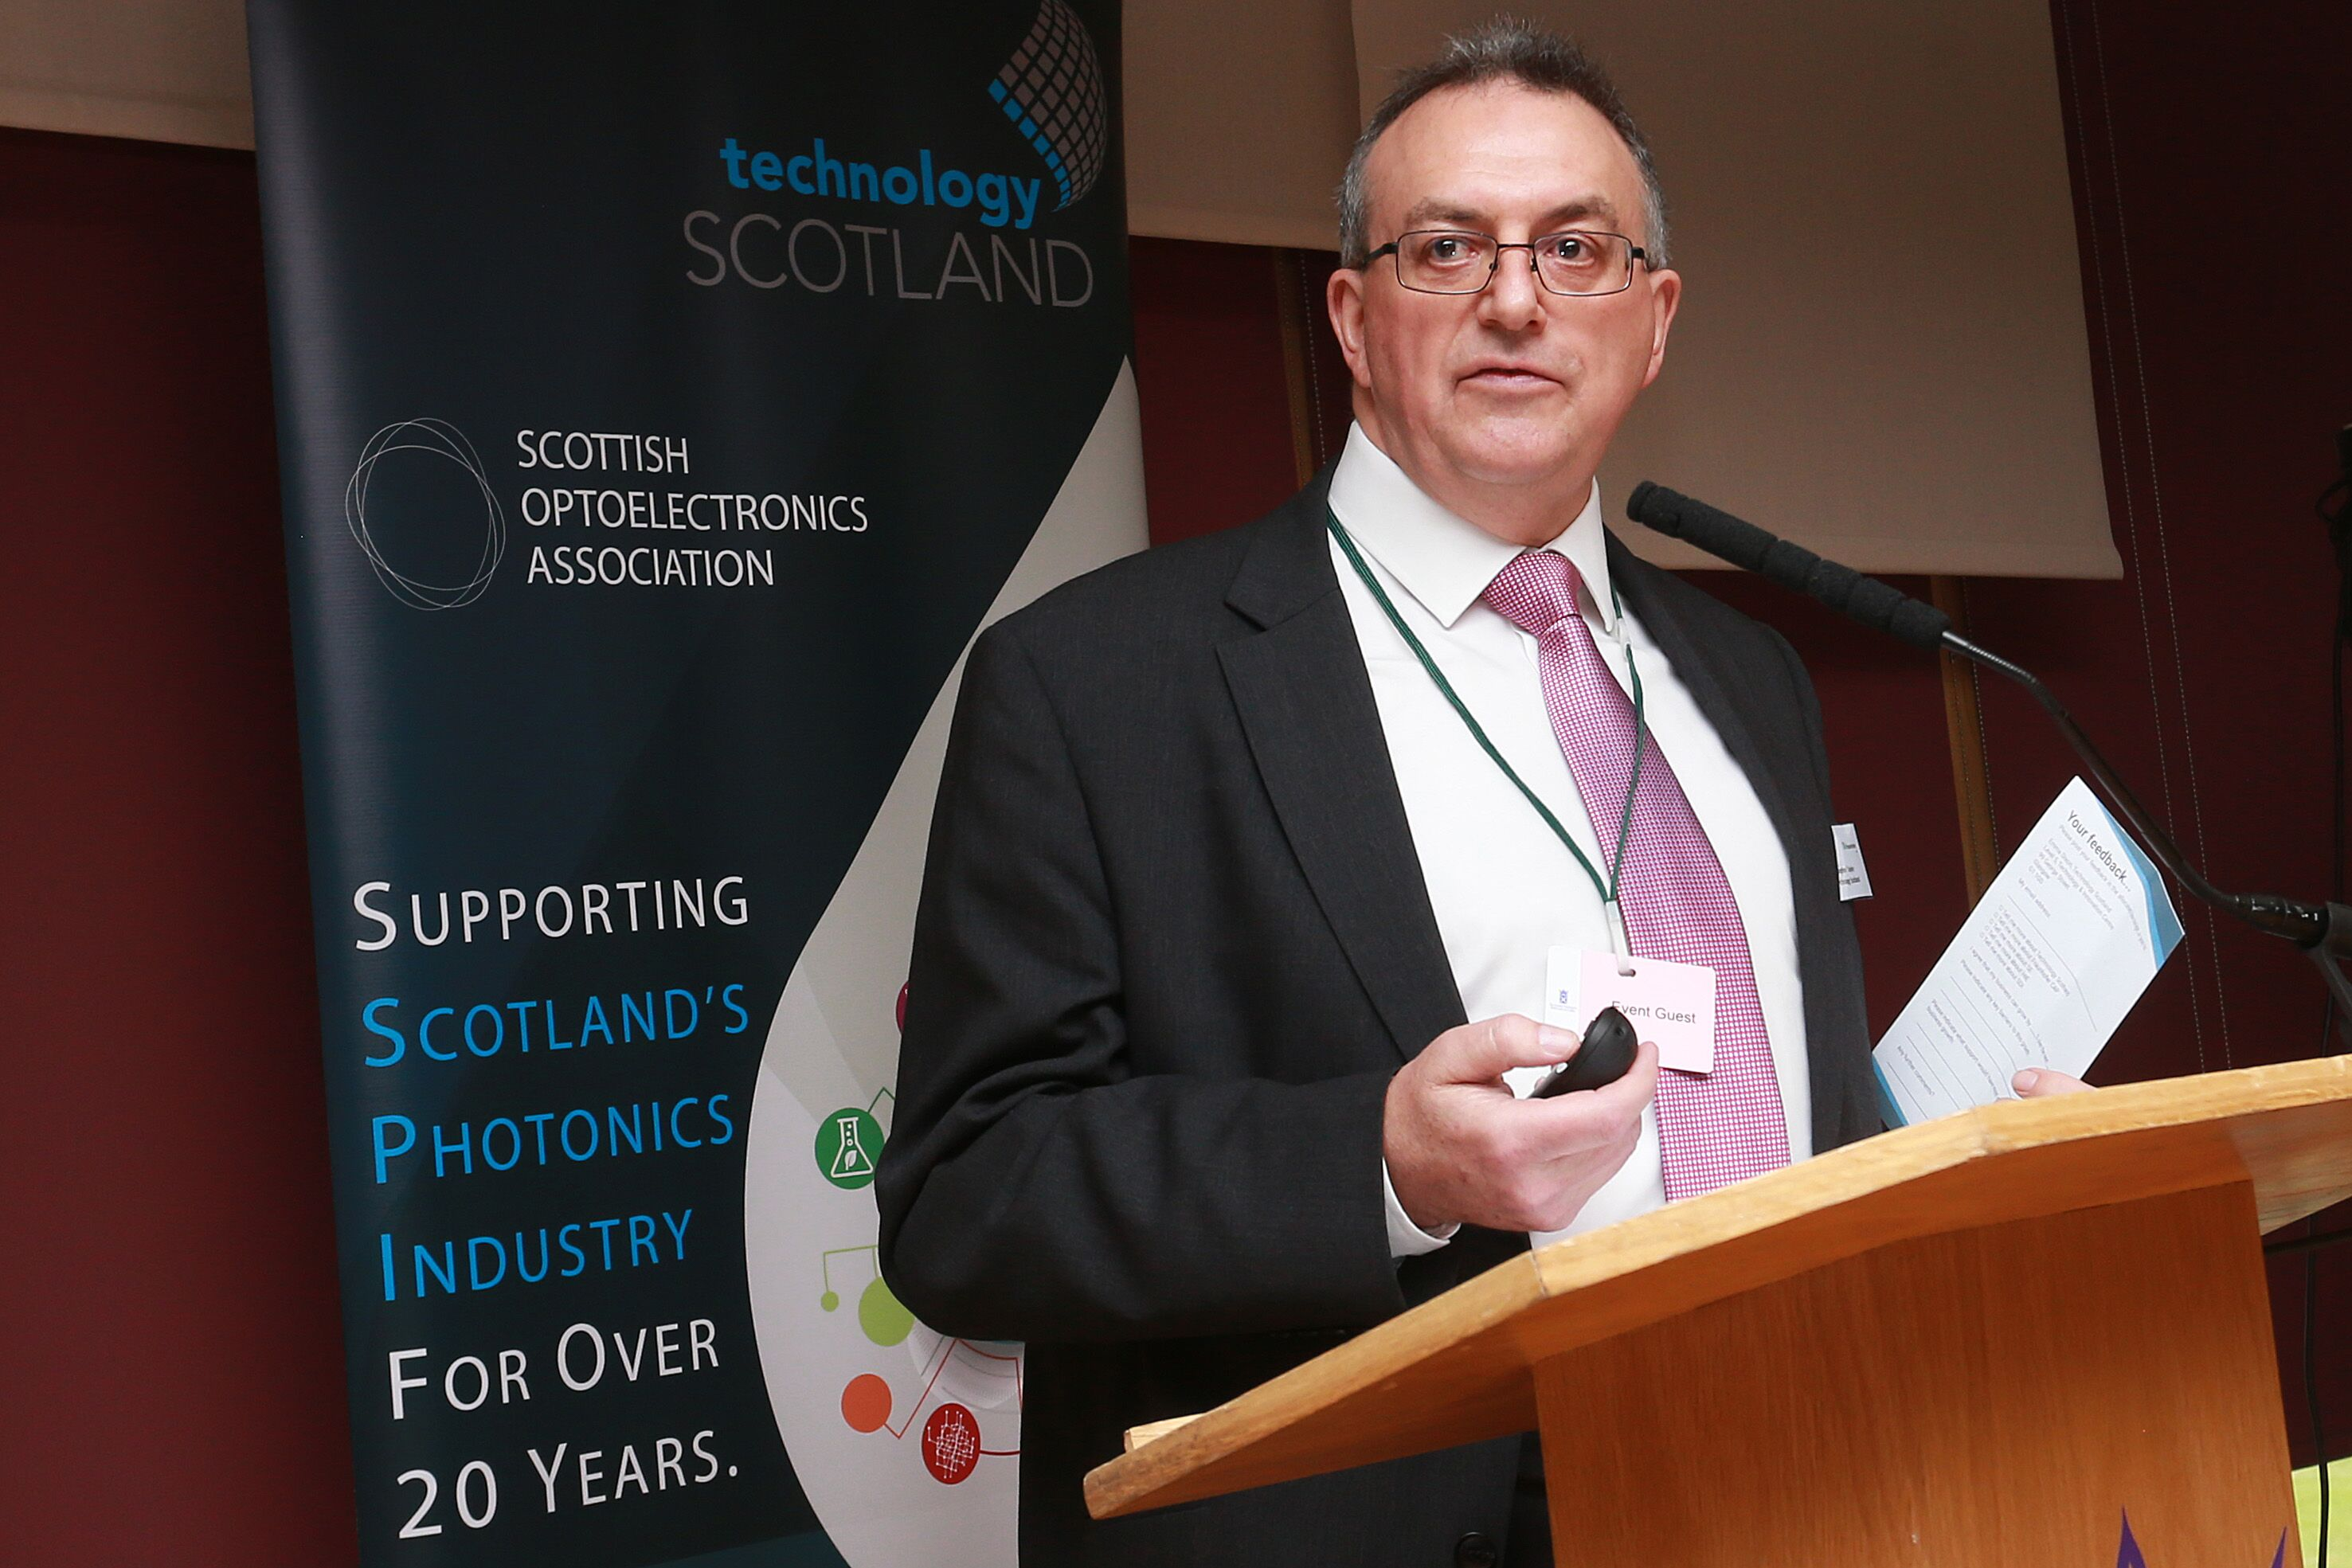 Stephen Taylor, CEO of Technology Scotland,